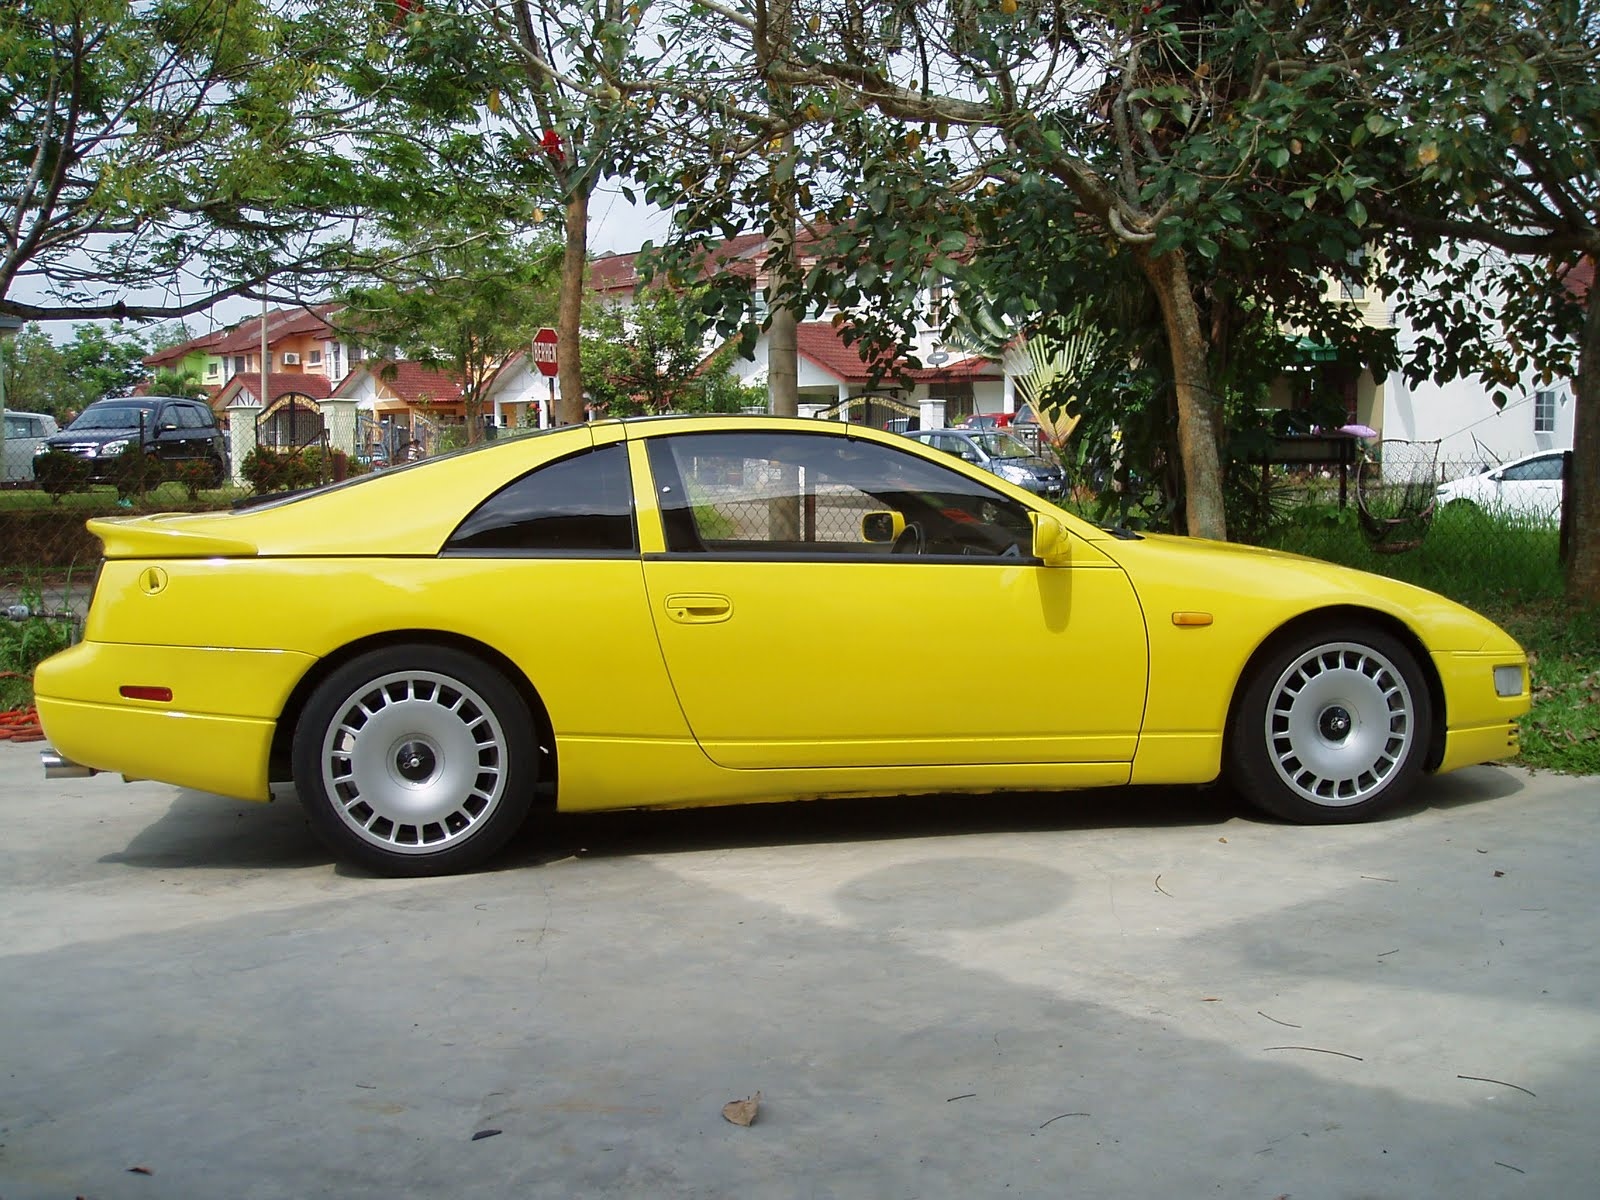 nissan fairlady z yellow Cars Review Wallpapers